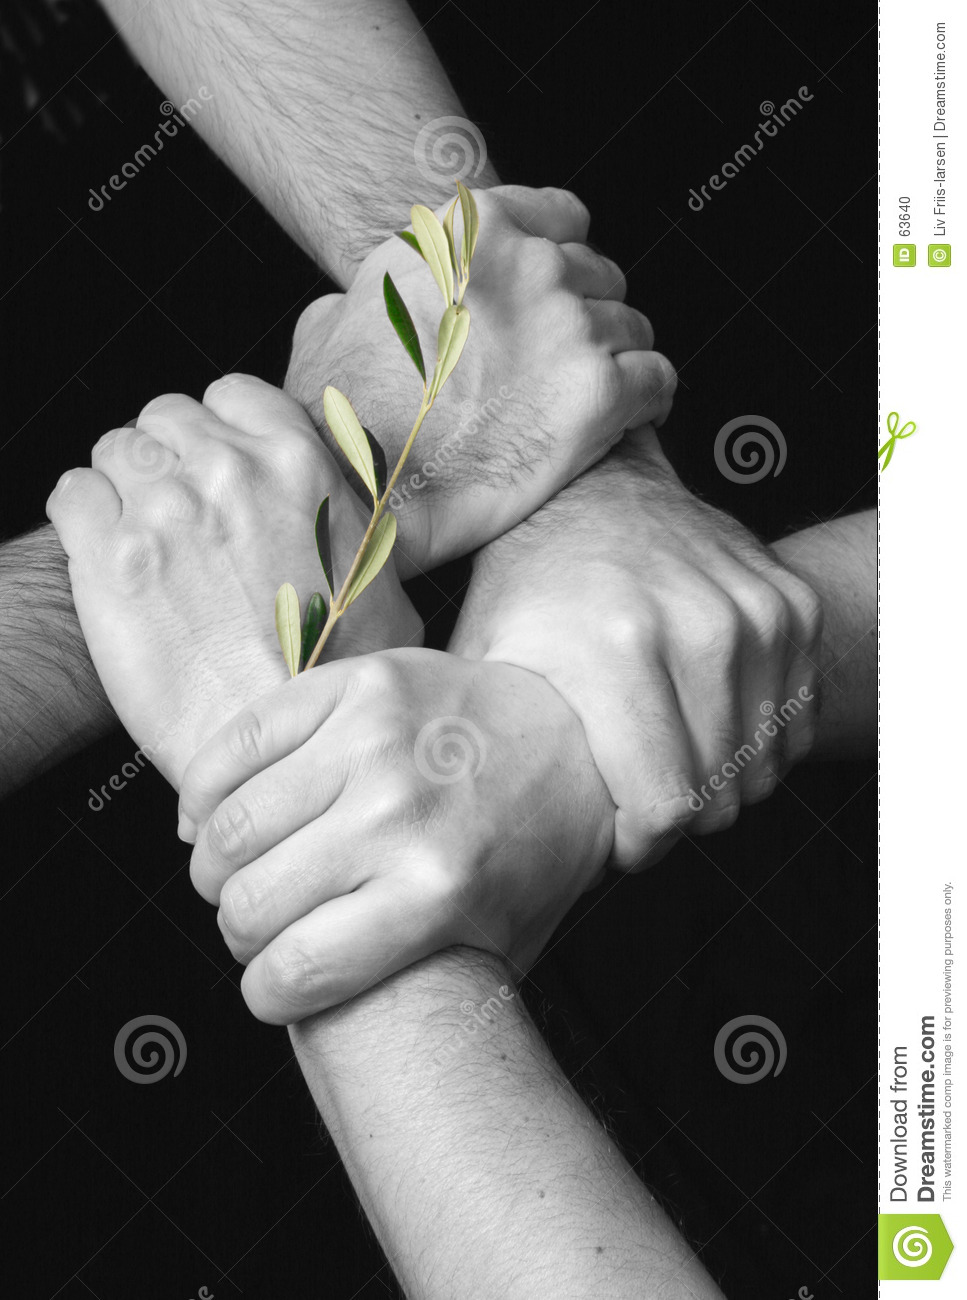 United in peace